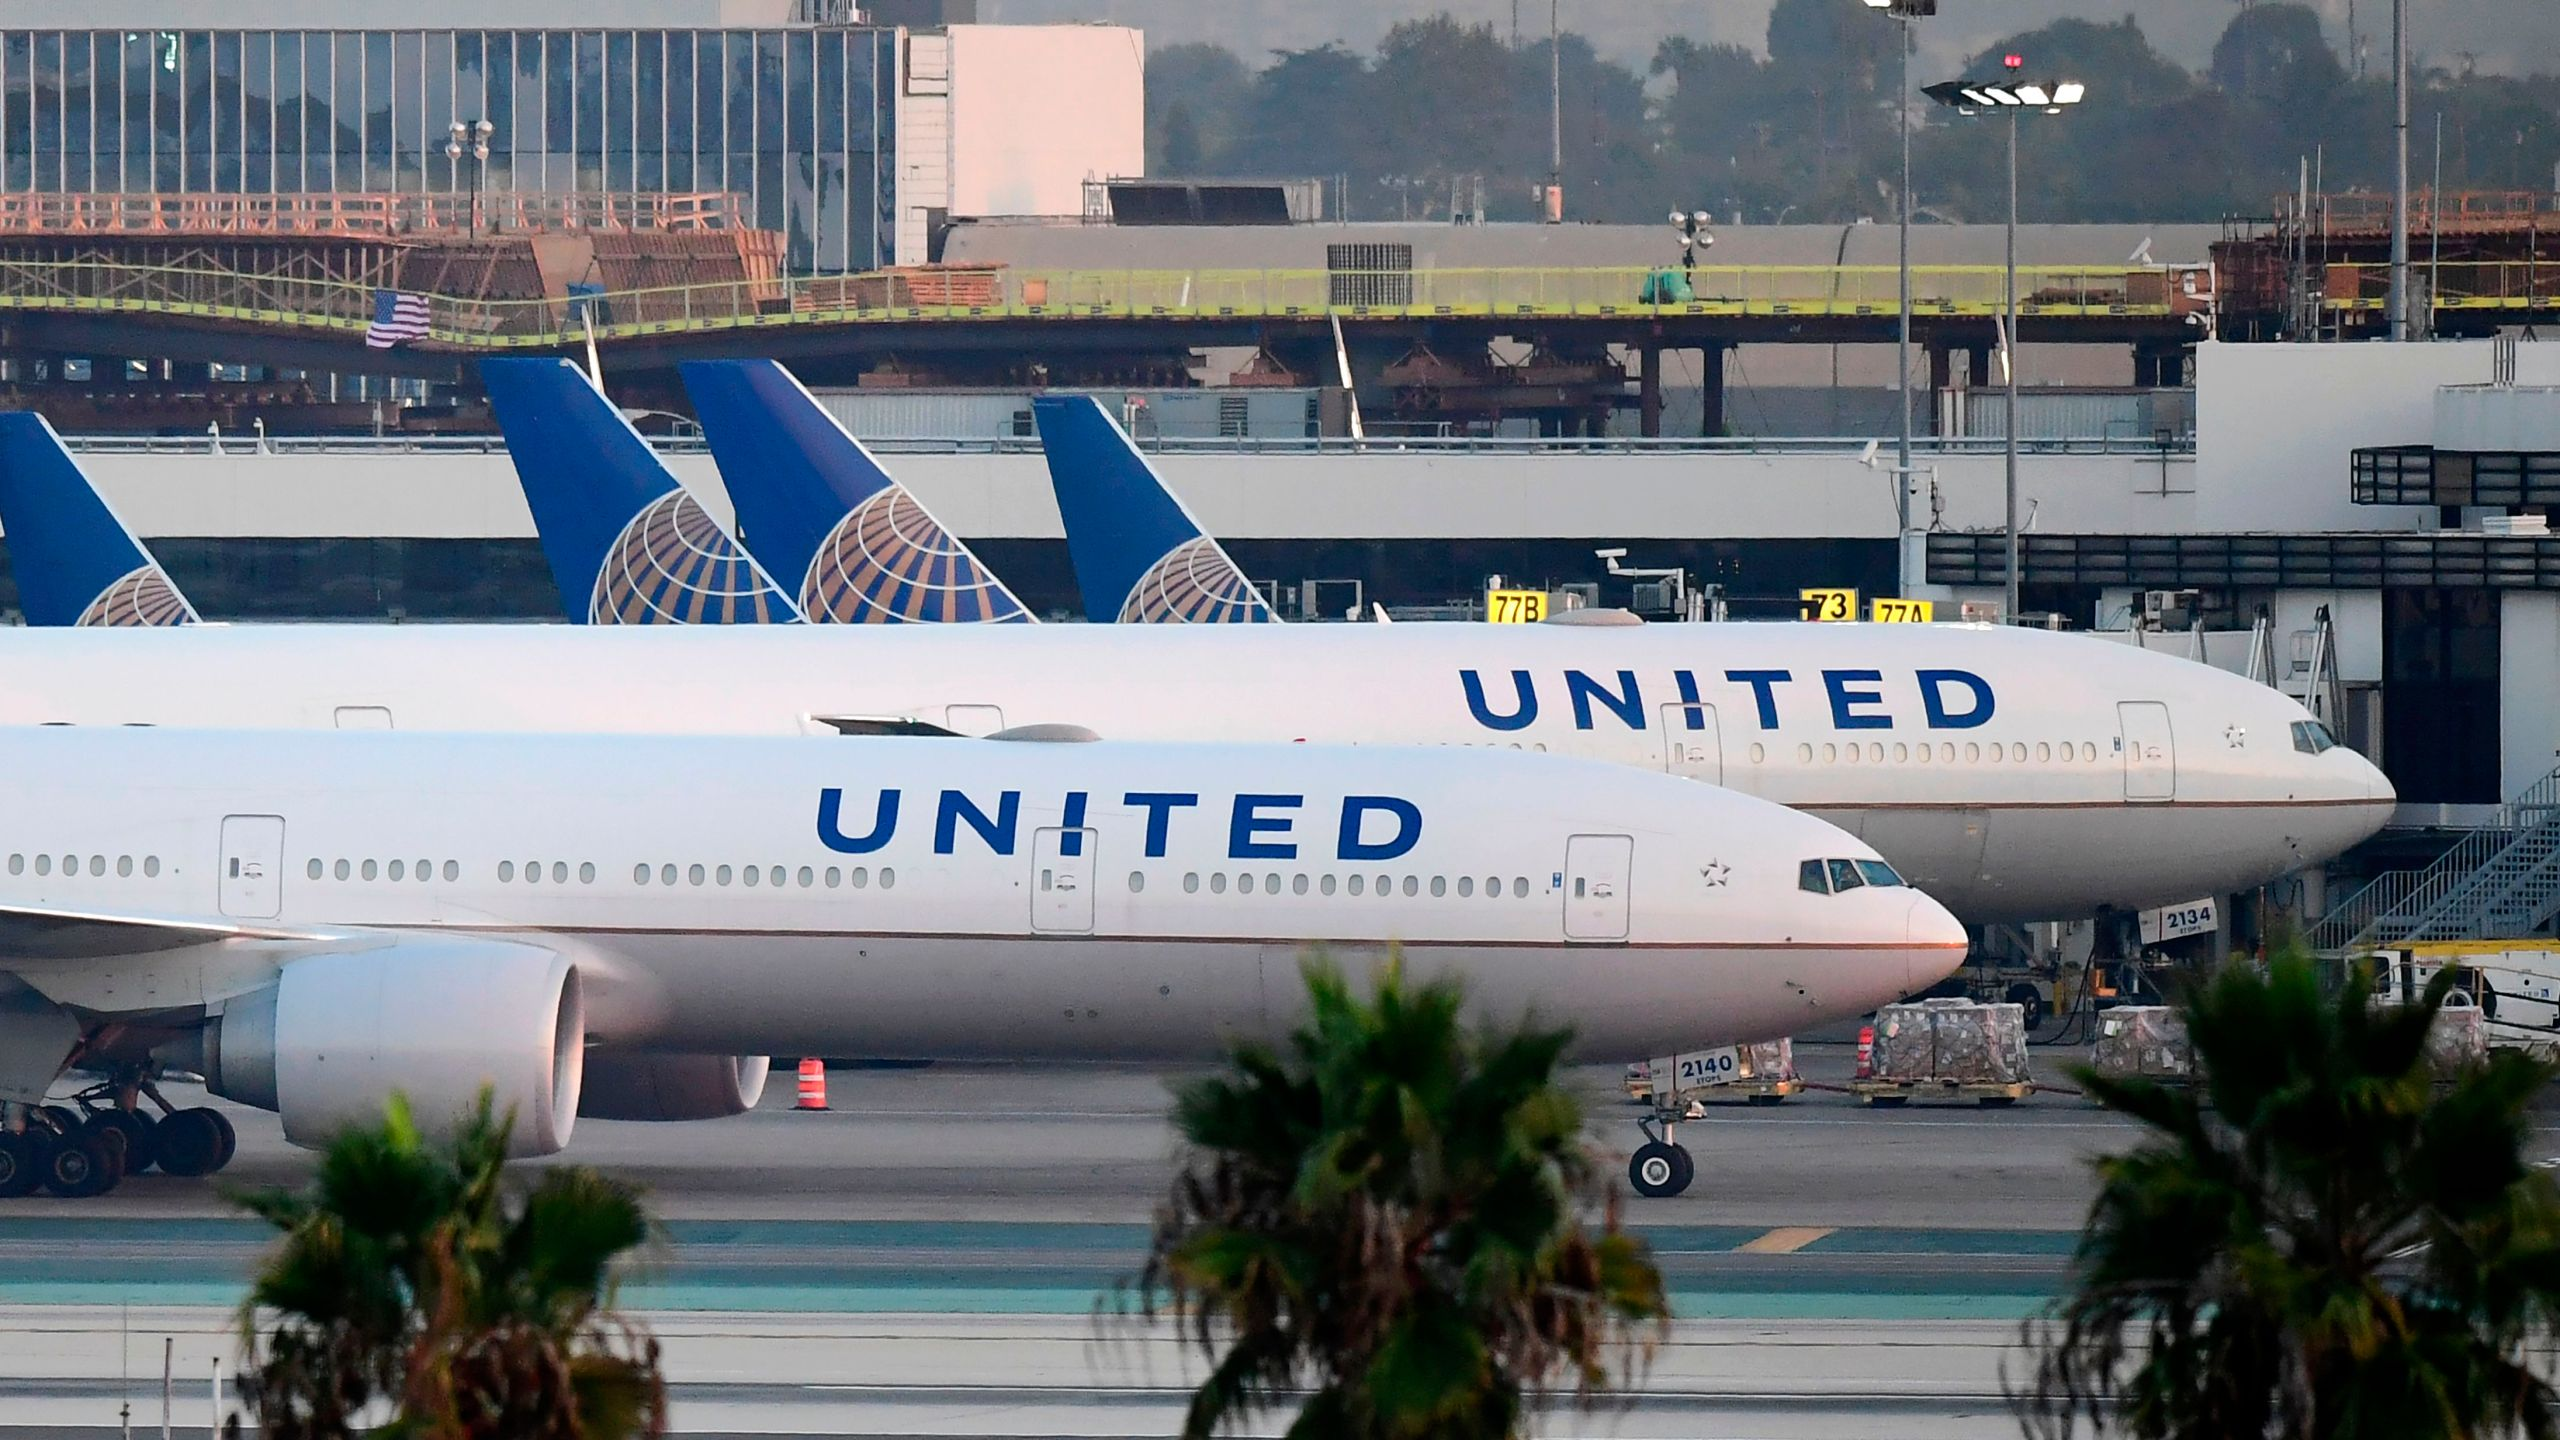 United Airlines planes LAX